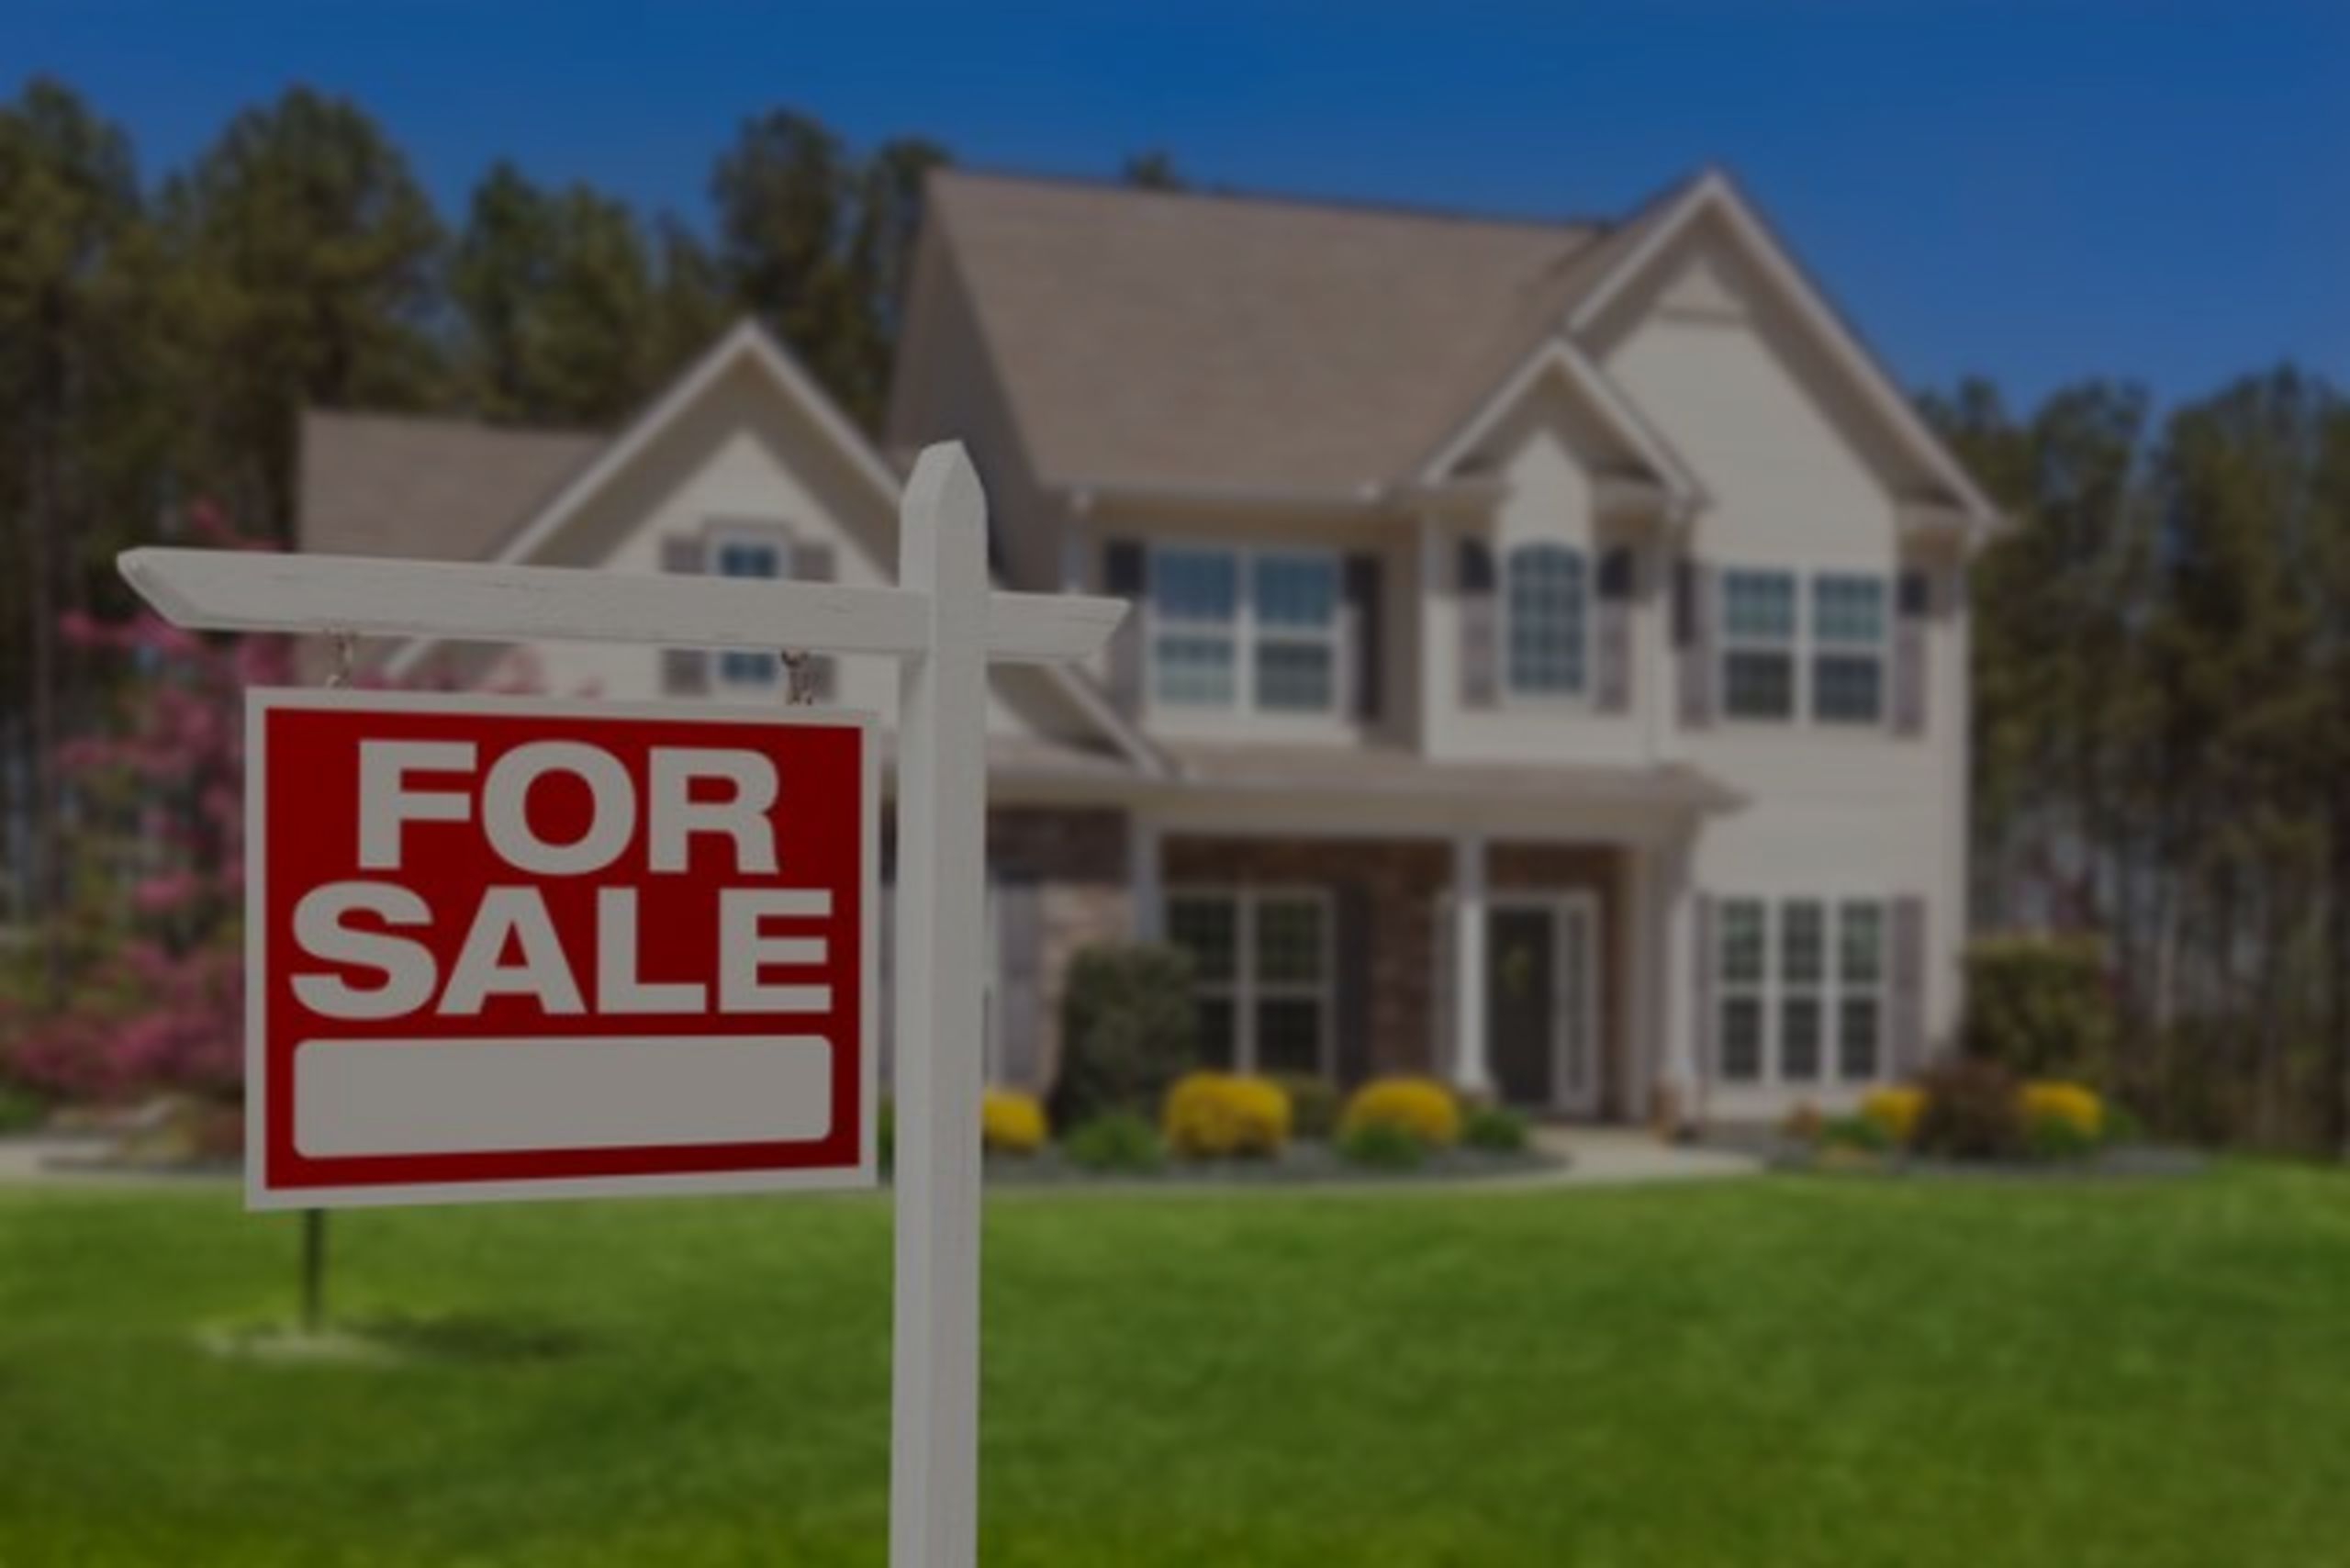 4 Things NOT to Do When Putting Your Home on the Market